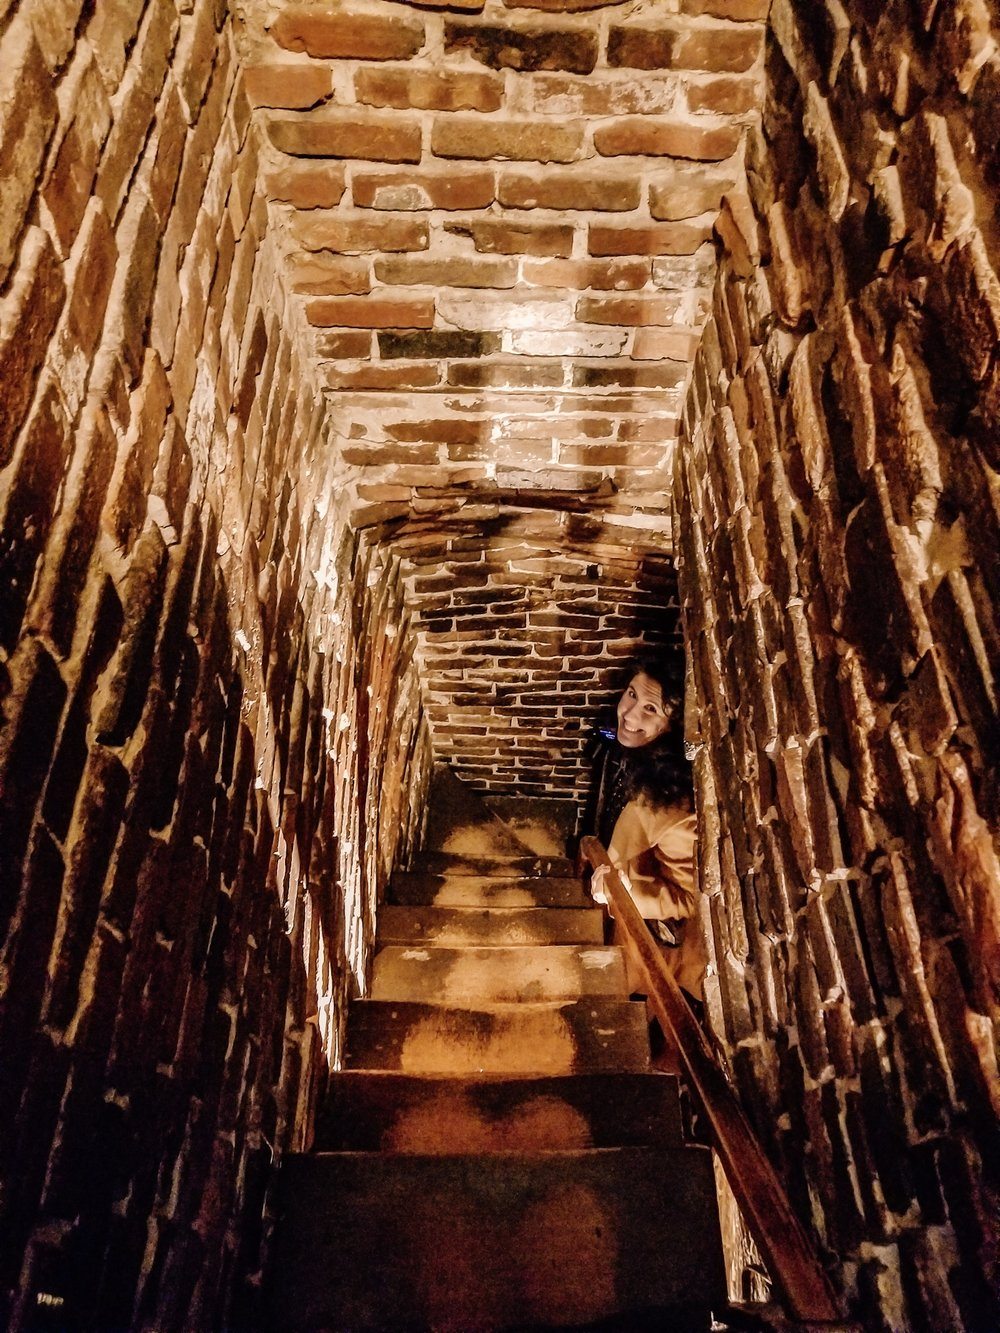 Climbing up the secret staircase in the Hosue of the Seven Gables